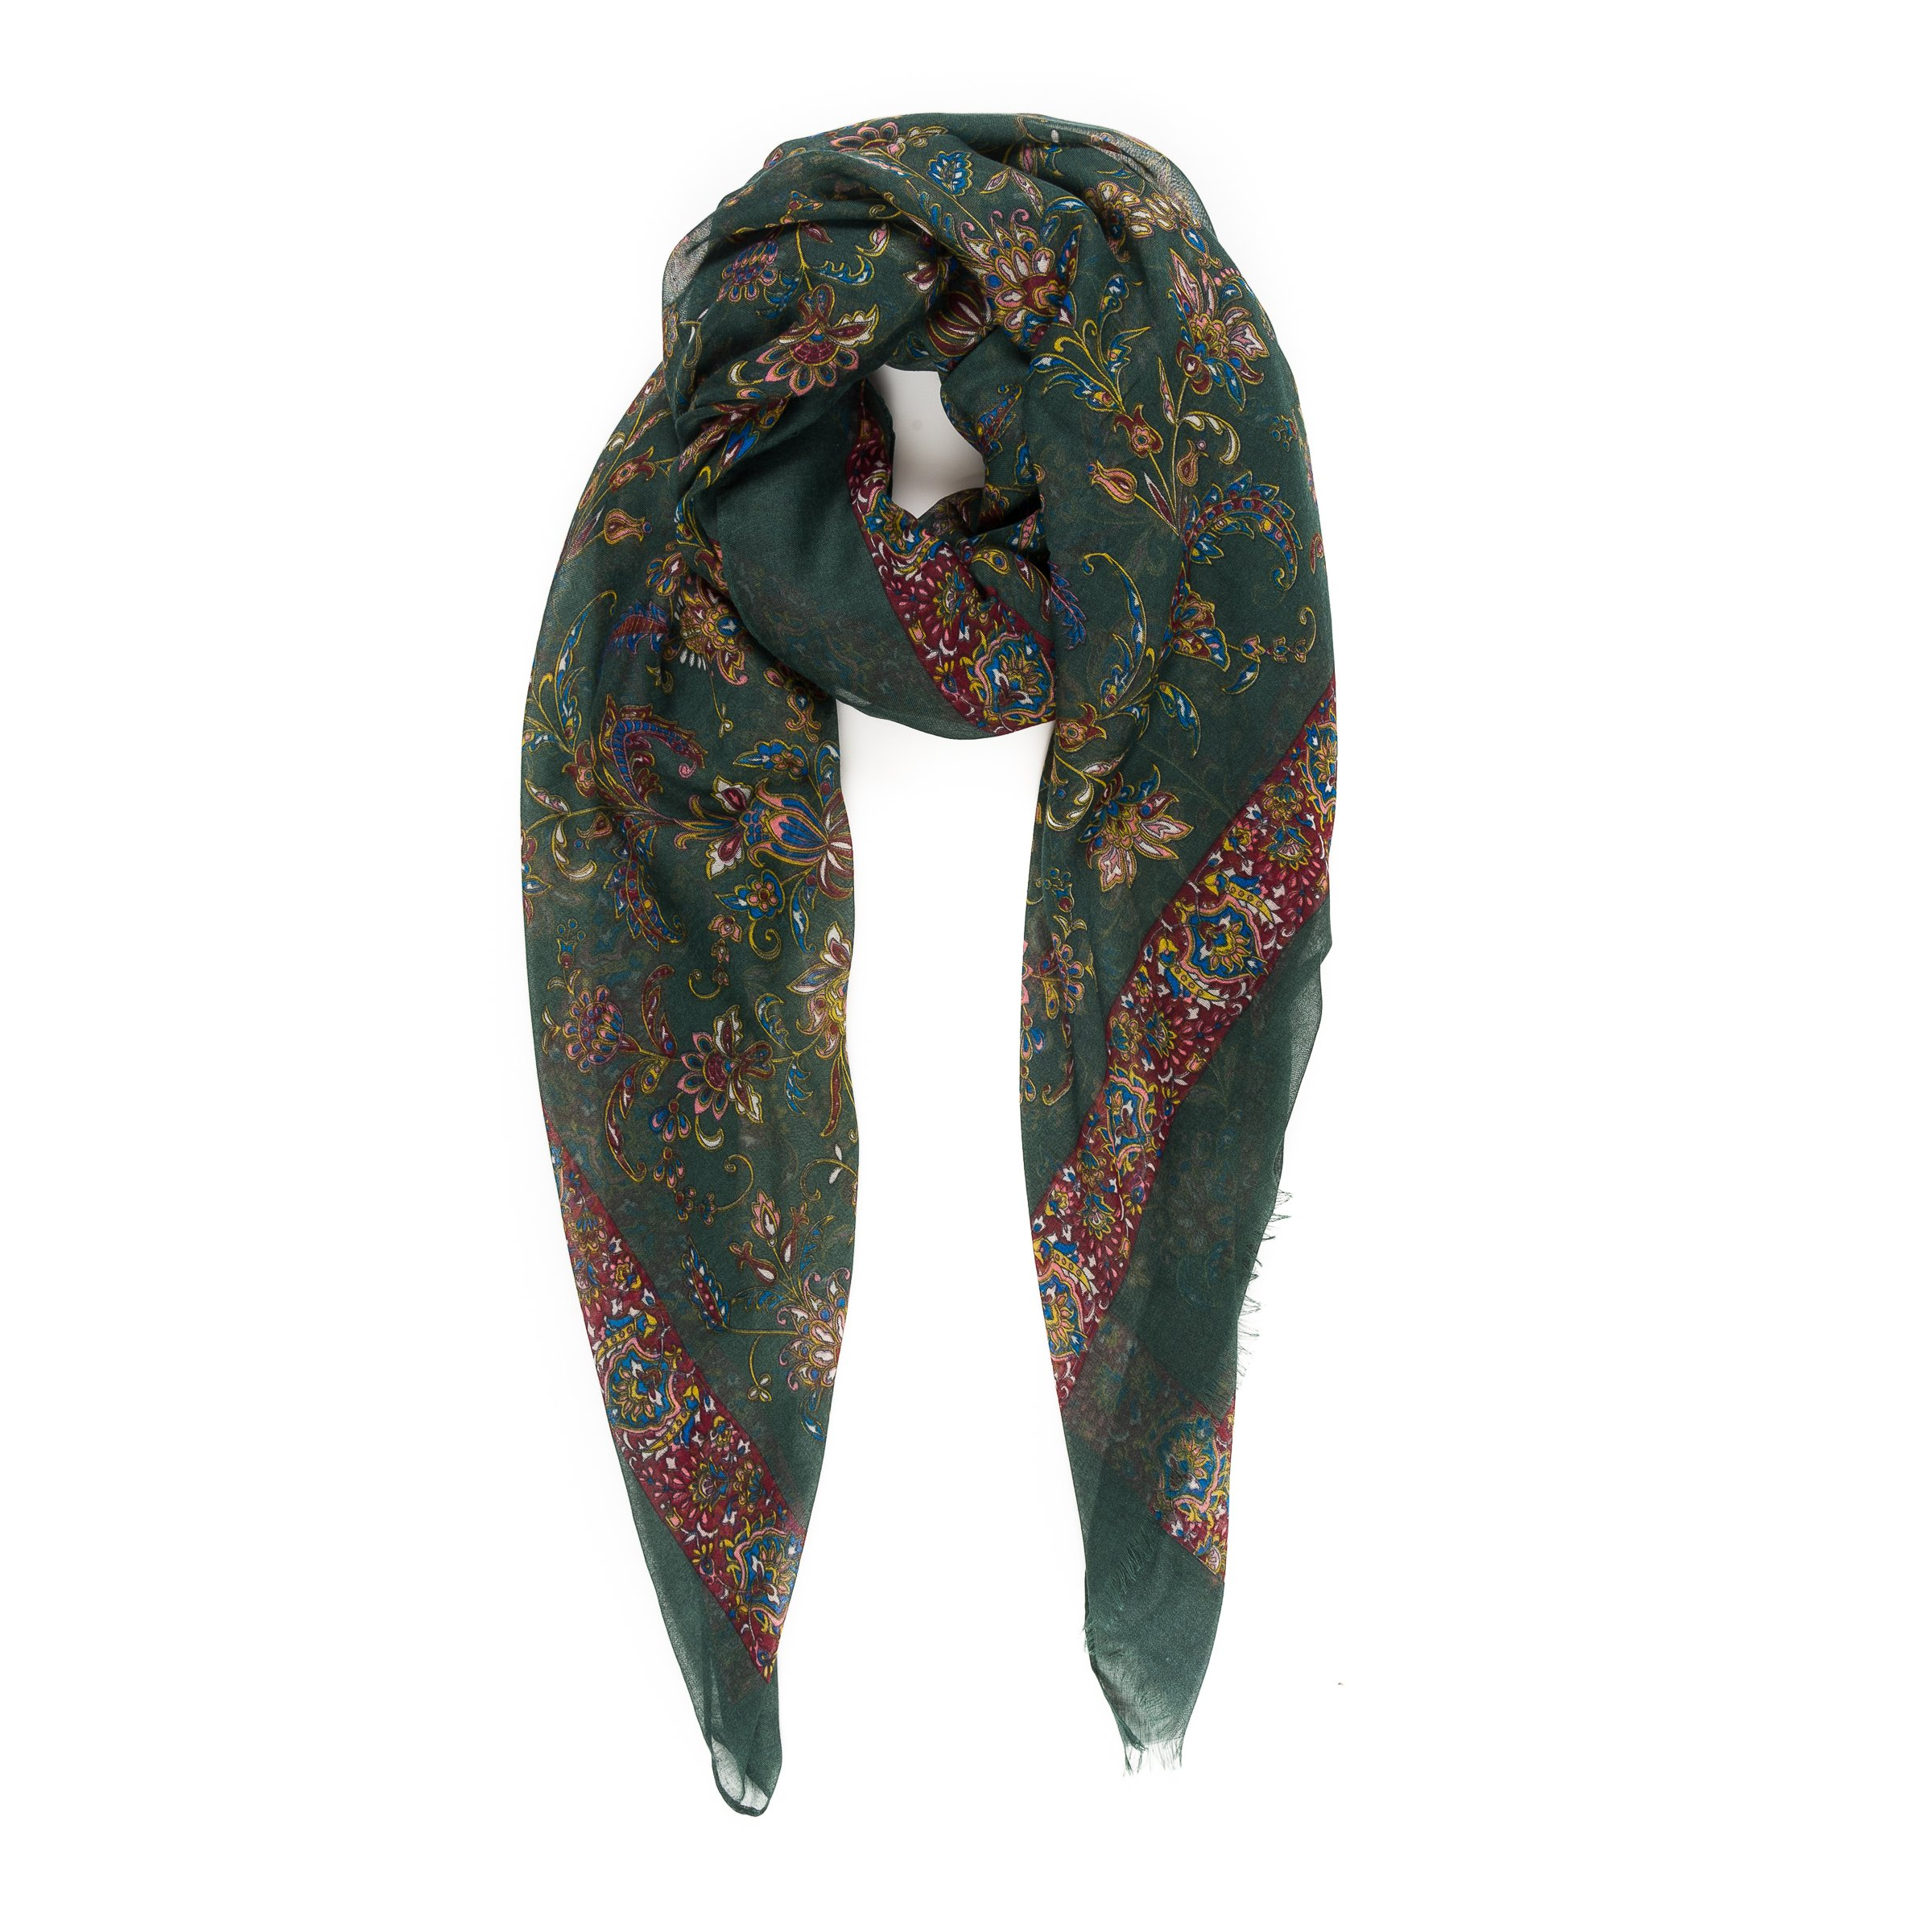 Scarf for Women Lightweight Fashion Summer Fall Scarves Shawl Wraps by Melifluos (NF53-10)